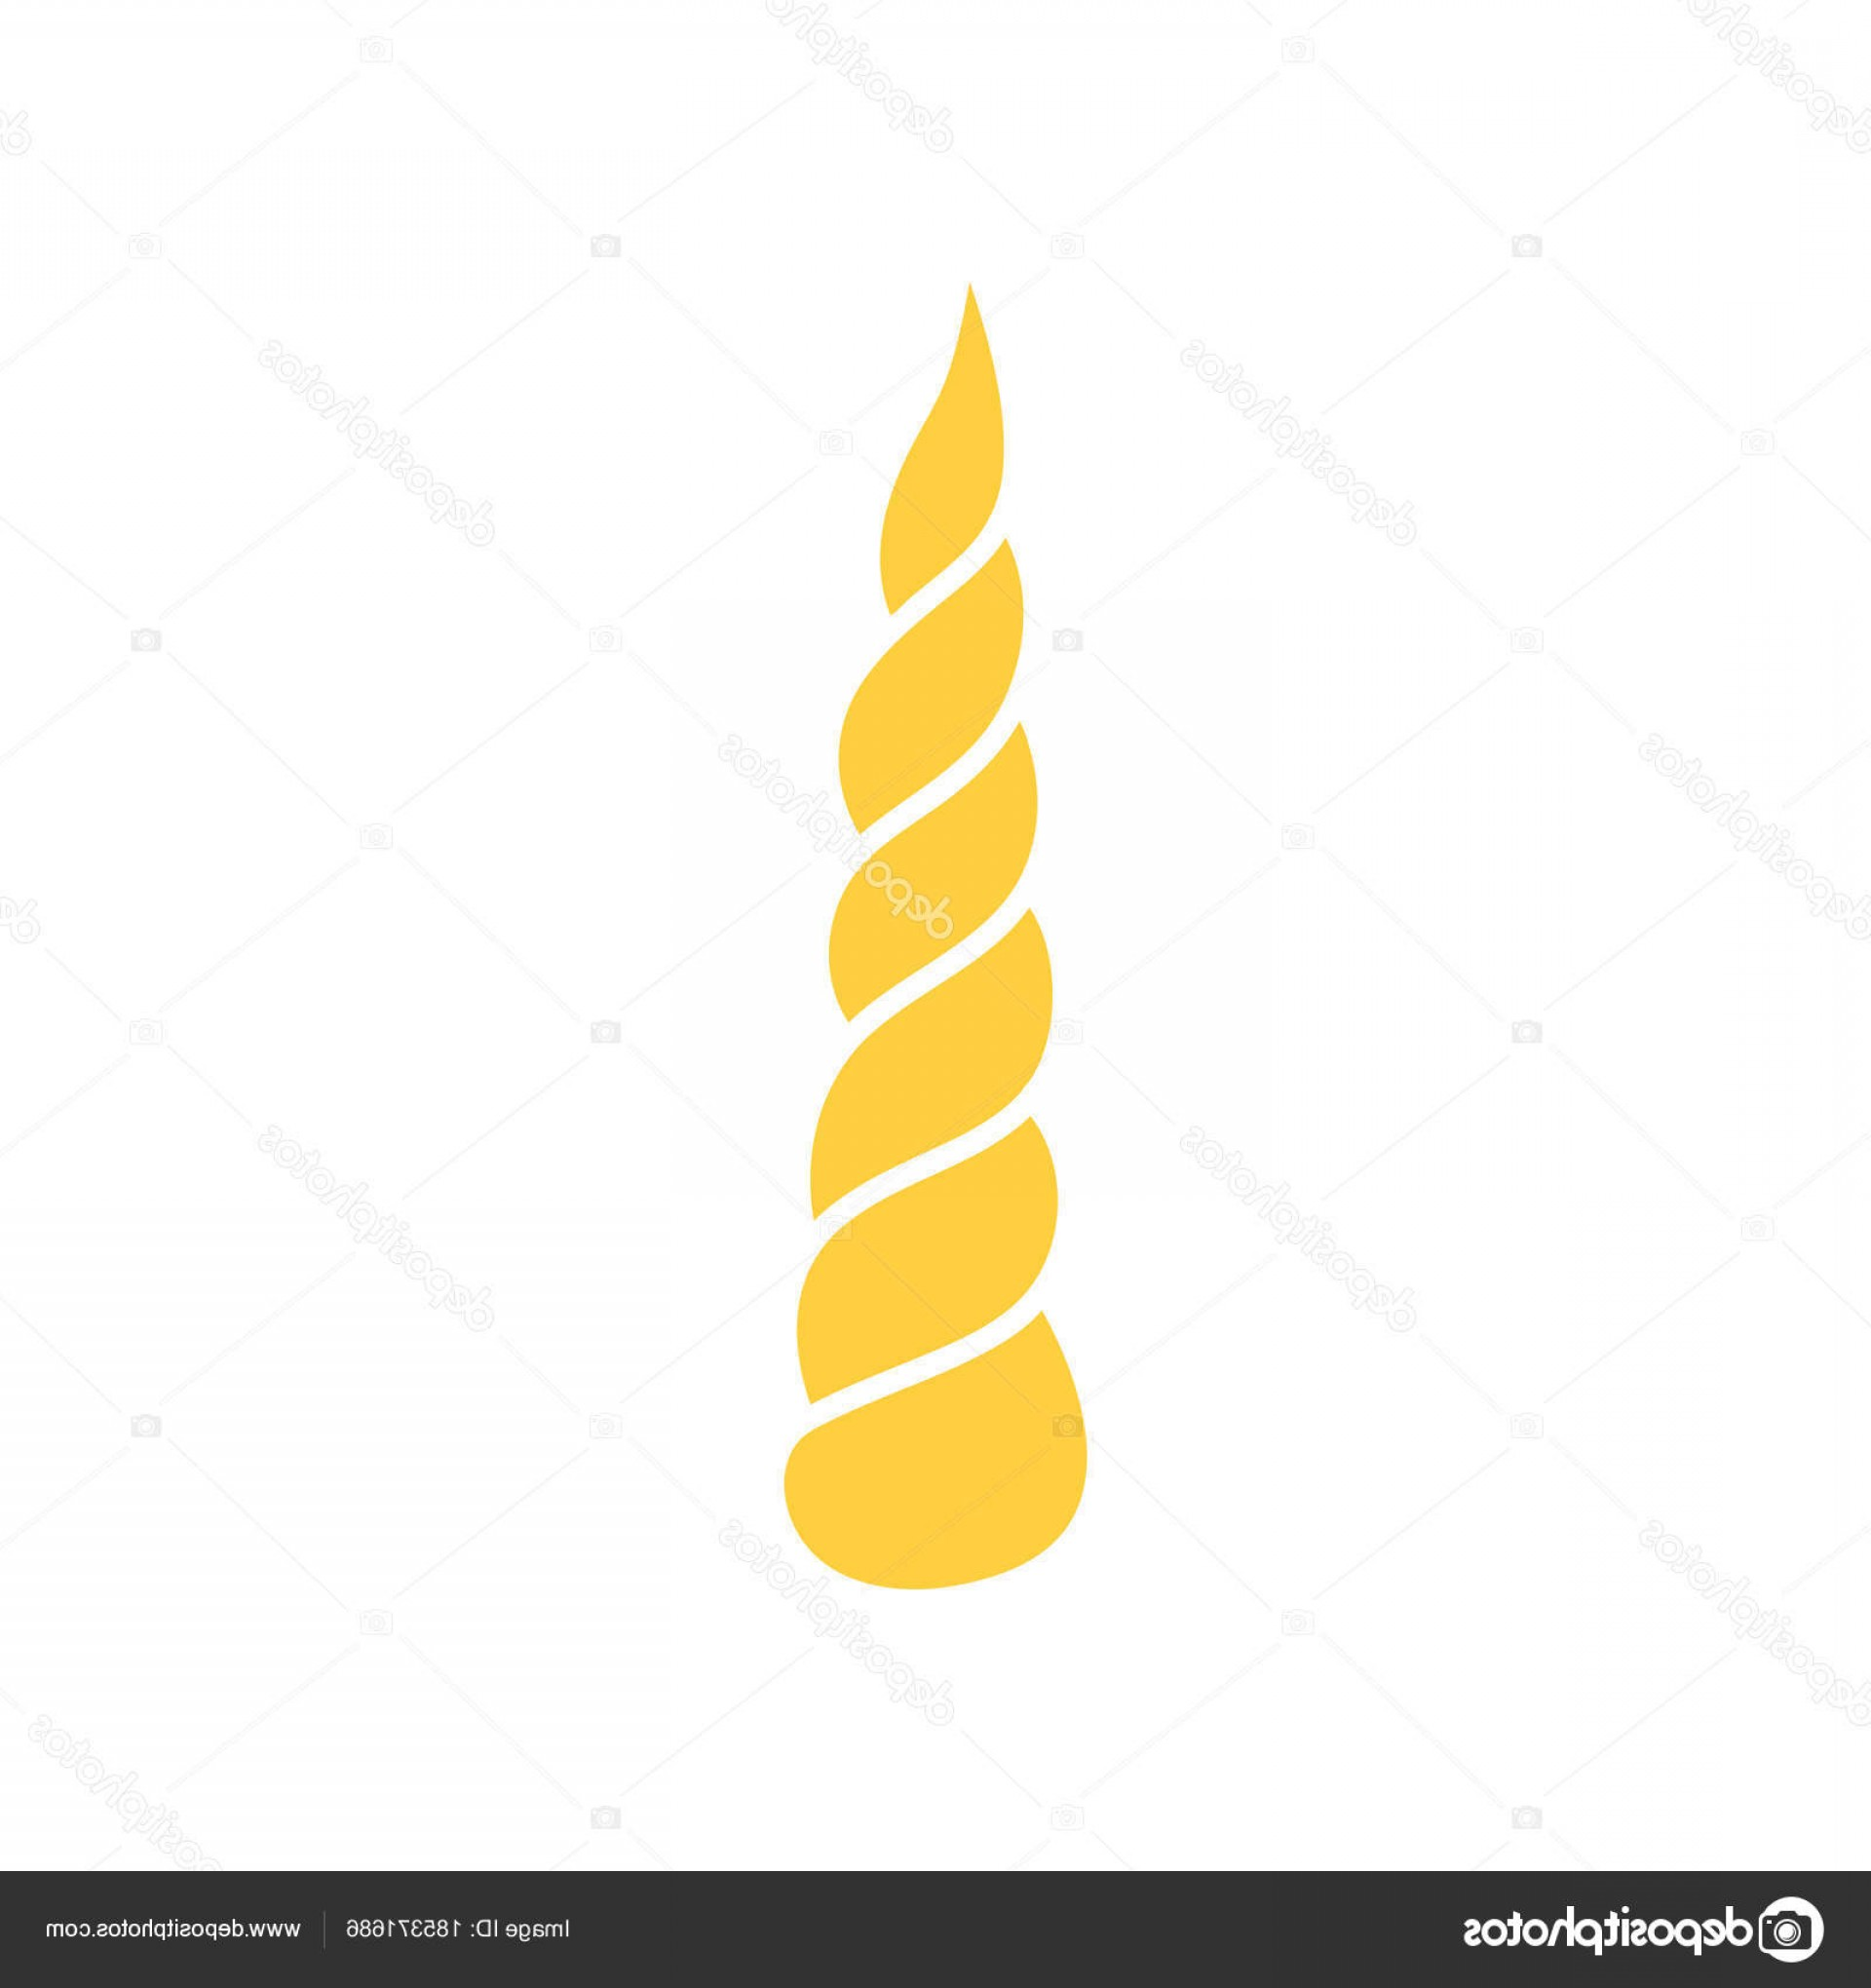 Unicorn Horn Vector: Stock Illustration Silhouette Of Unicorn Horn Isolated